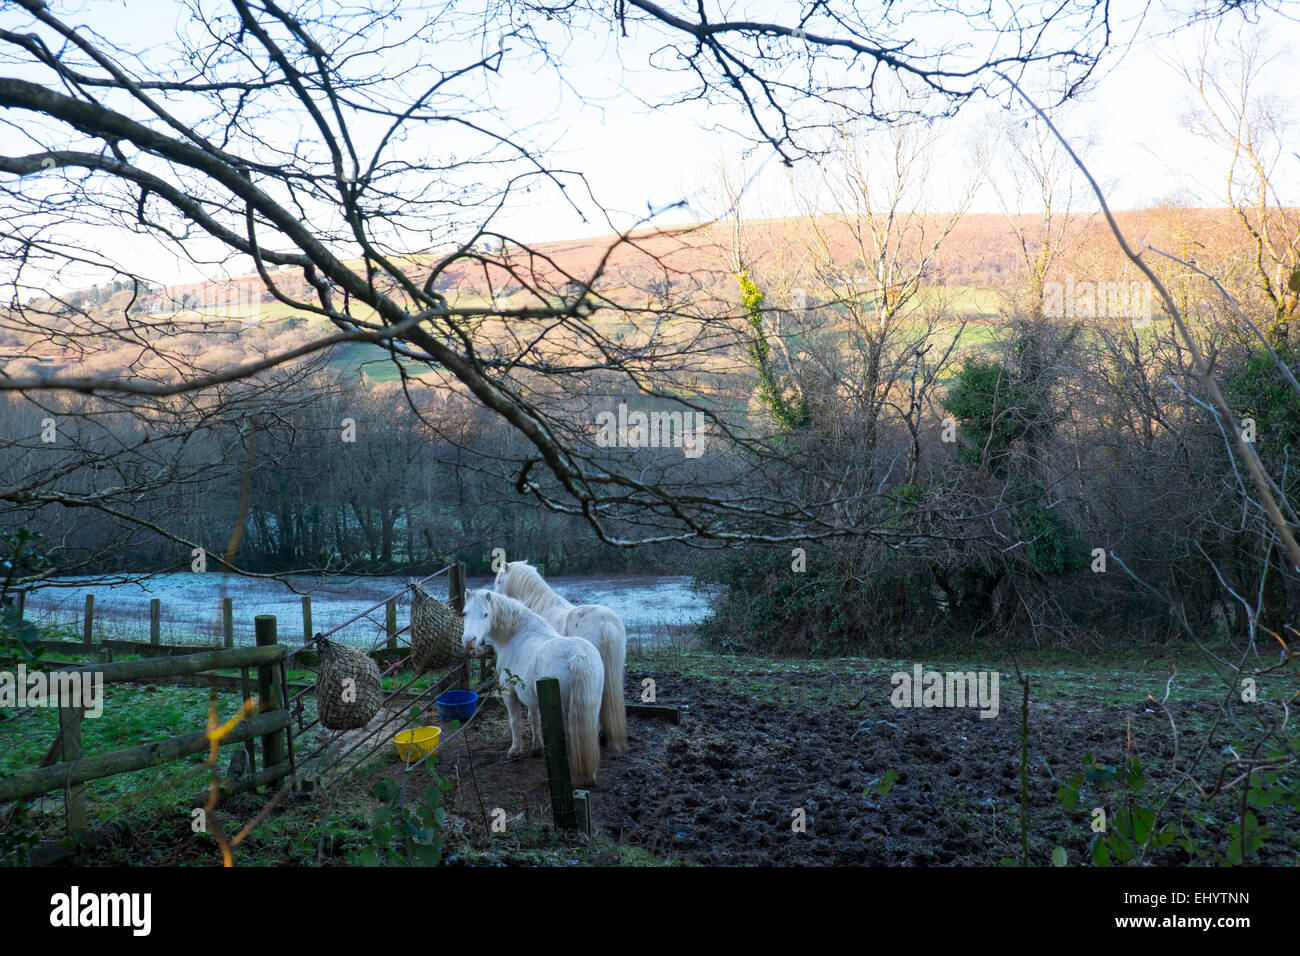 Ponies in muddy field, Garth mountain, near Cardiff, South Wales, UK - Stock Image